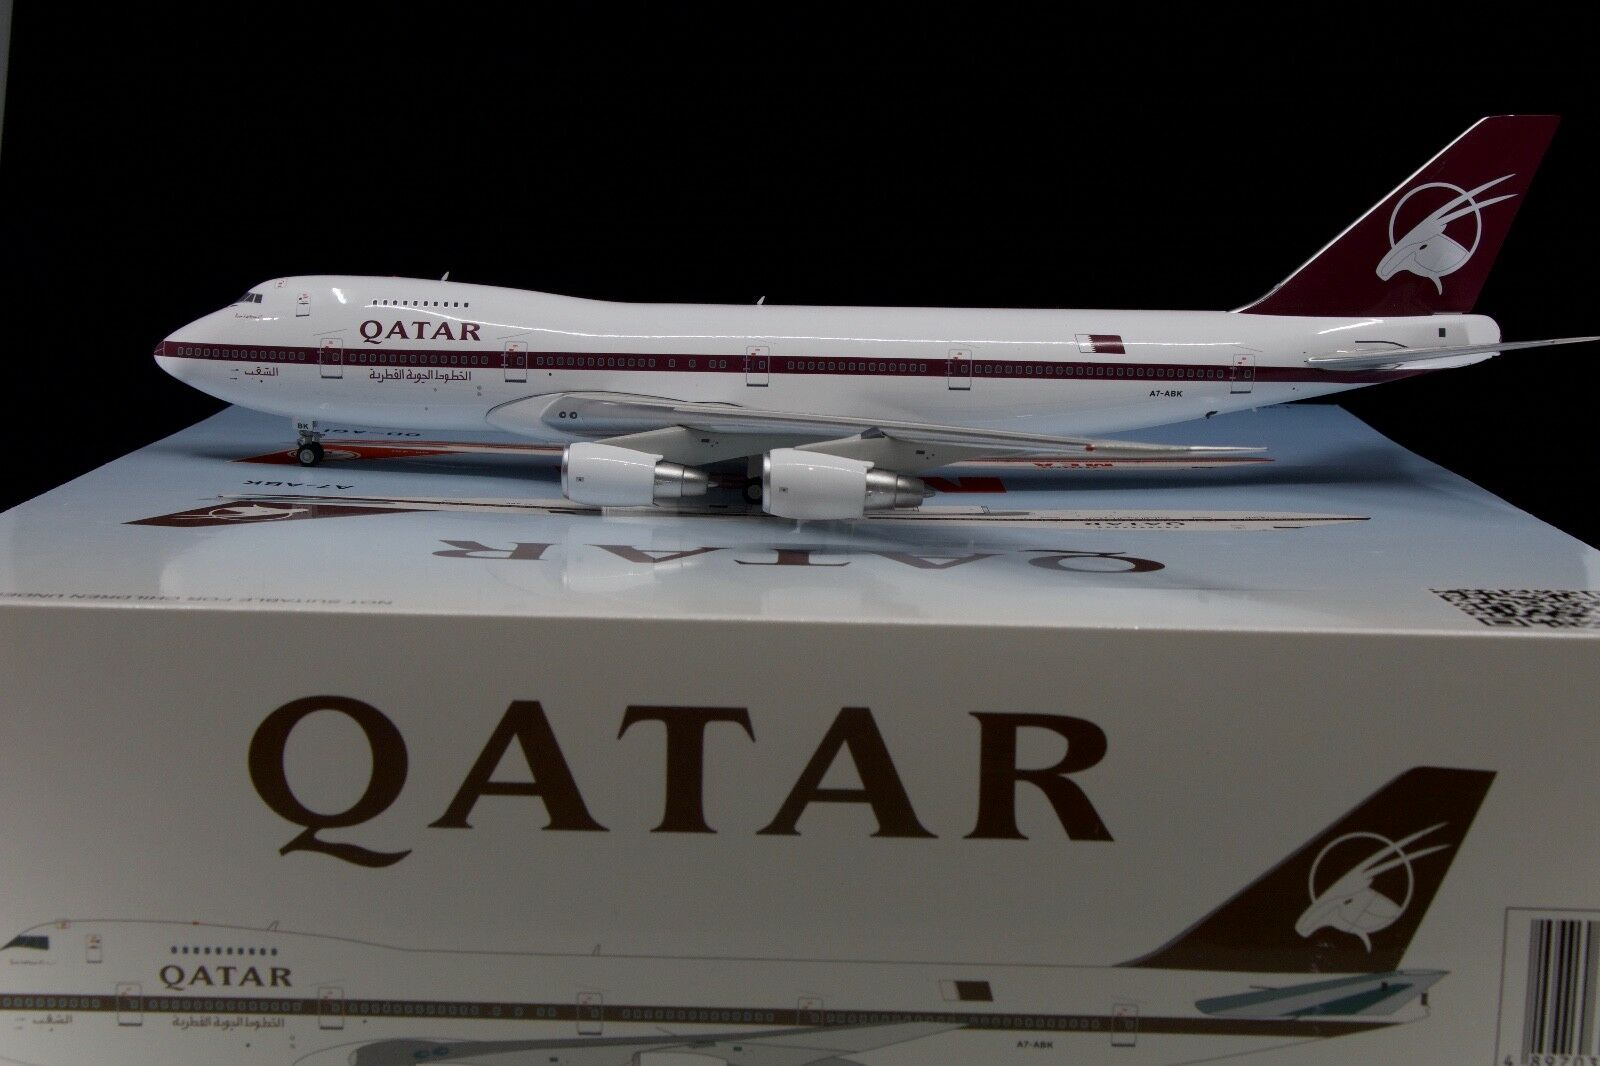 Inflight200 1 200 Qatar Airways 747SR-81 A7-ABK